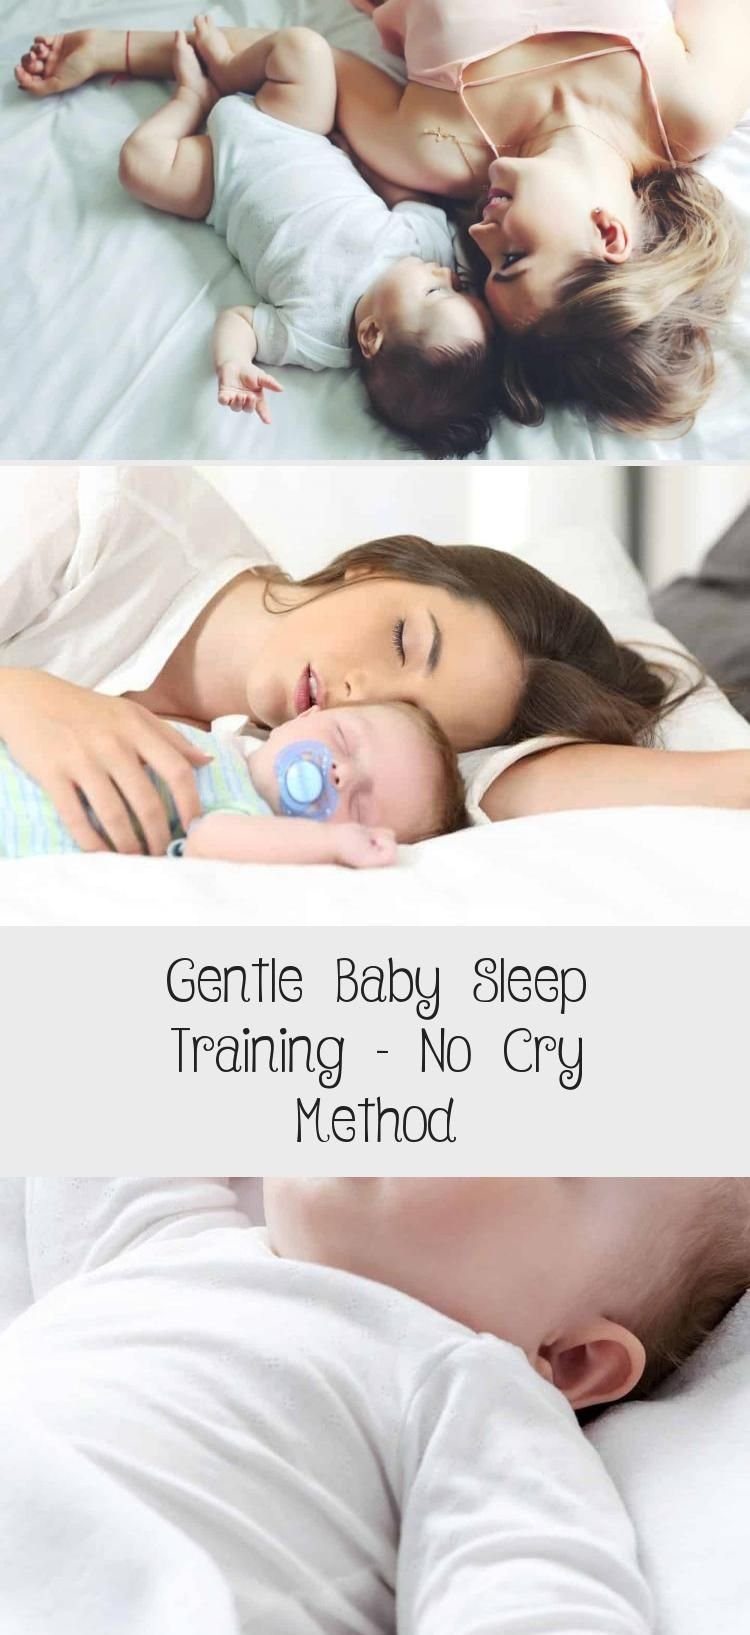 Gentle Baby Sleep Training – No Cry Method - health and diet fitness -  Wondering how you can encour...